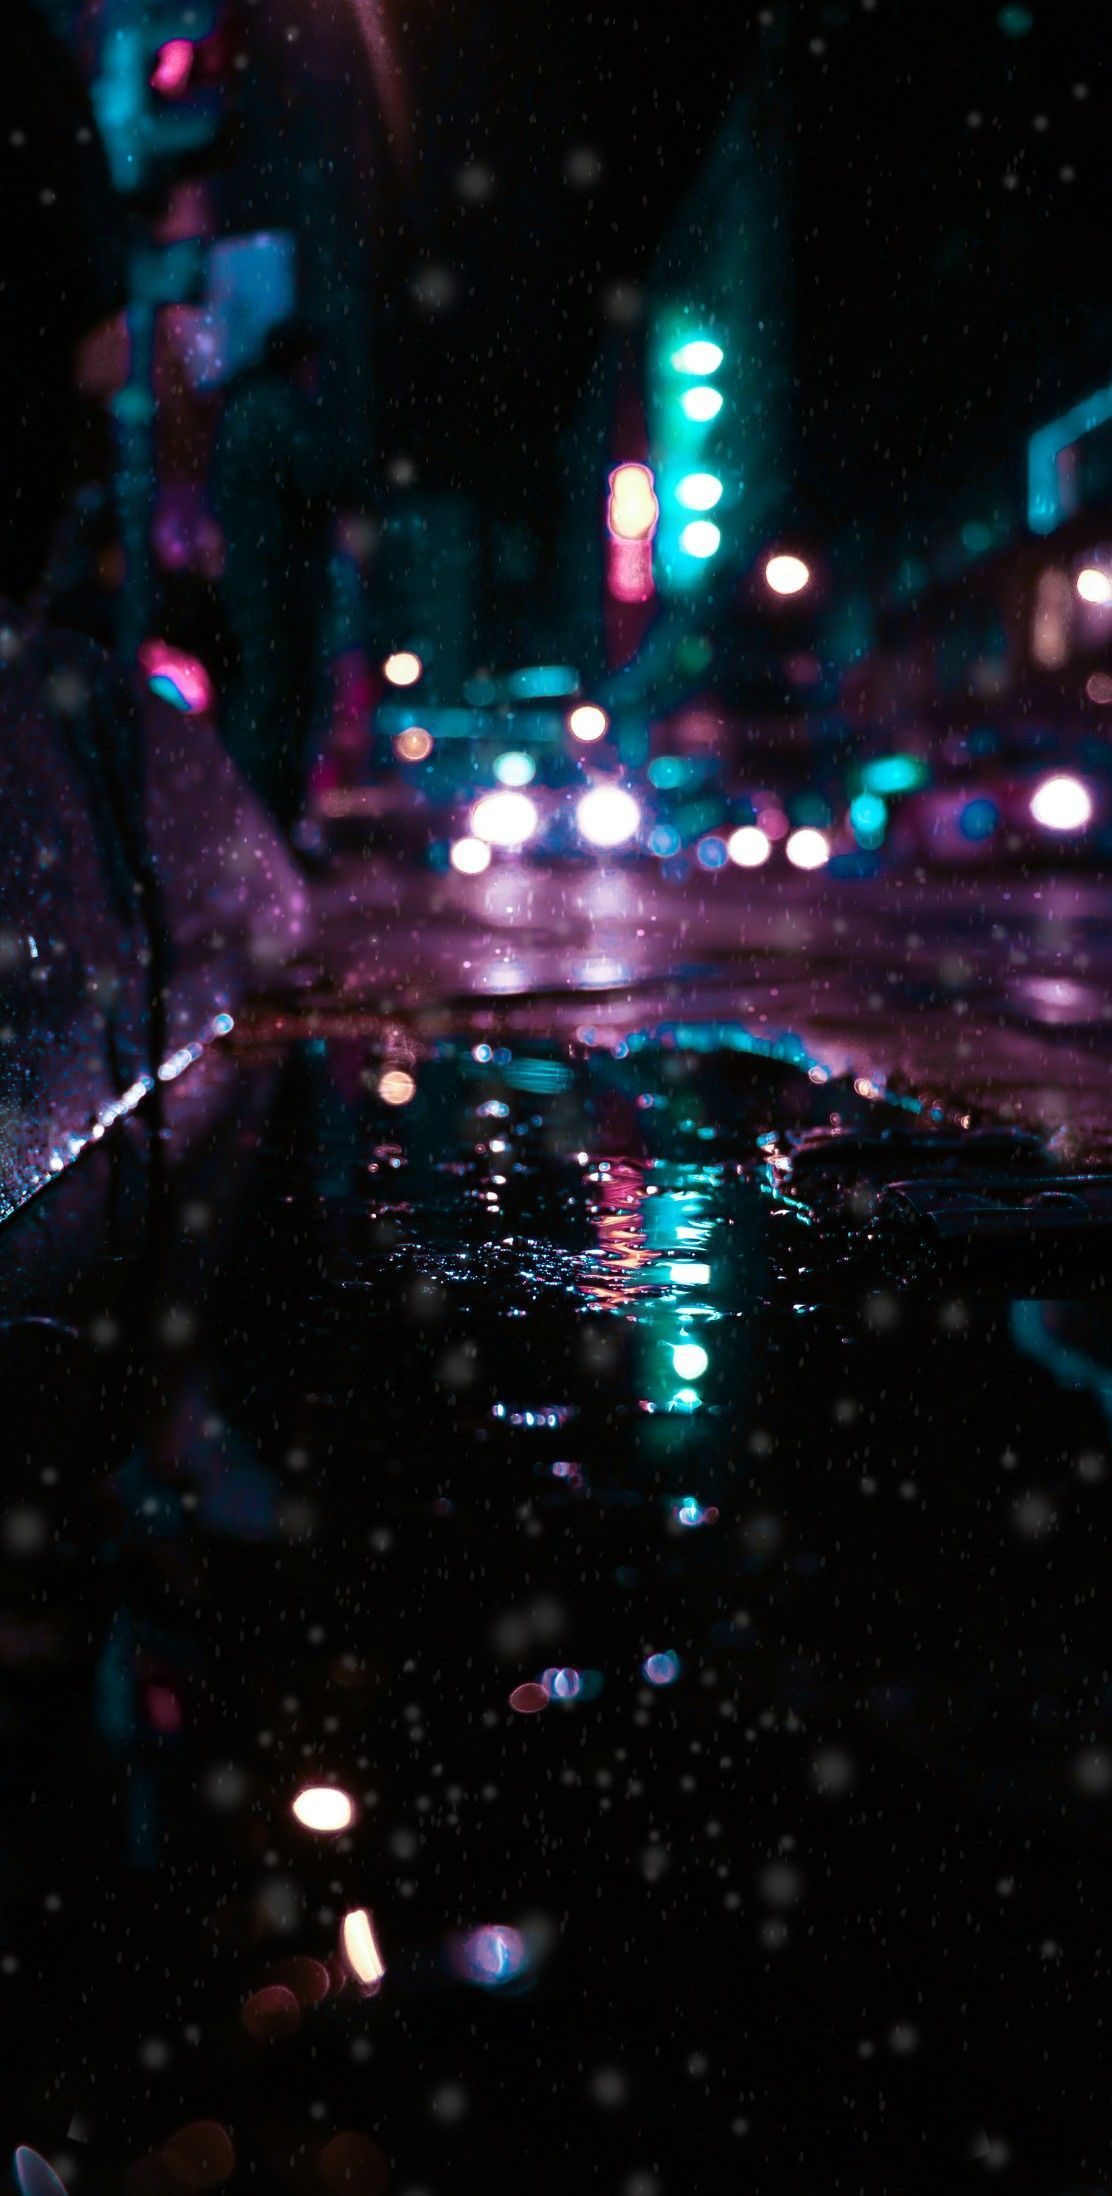 4k Wallpaper Follow Me In 2020 Rainy Wallpaper 4k Wallpaper For Mobile Neon Wallpaper